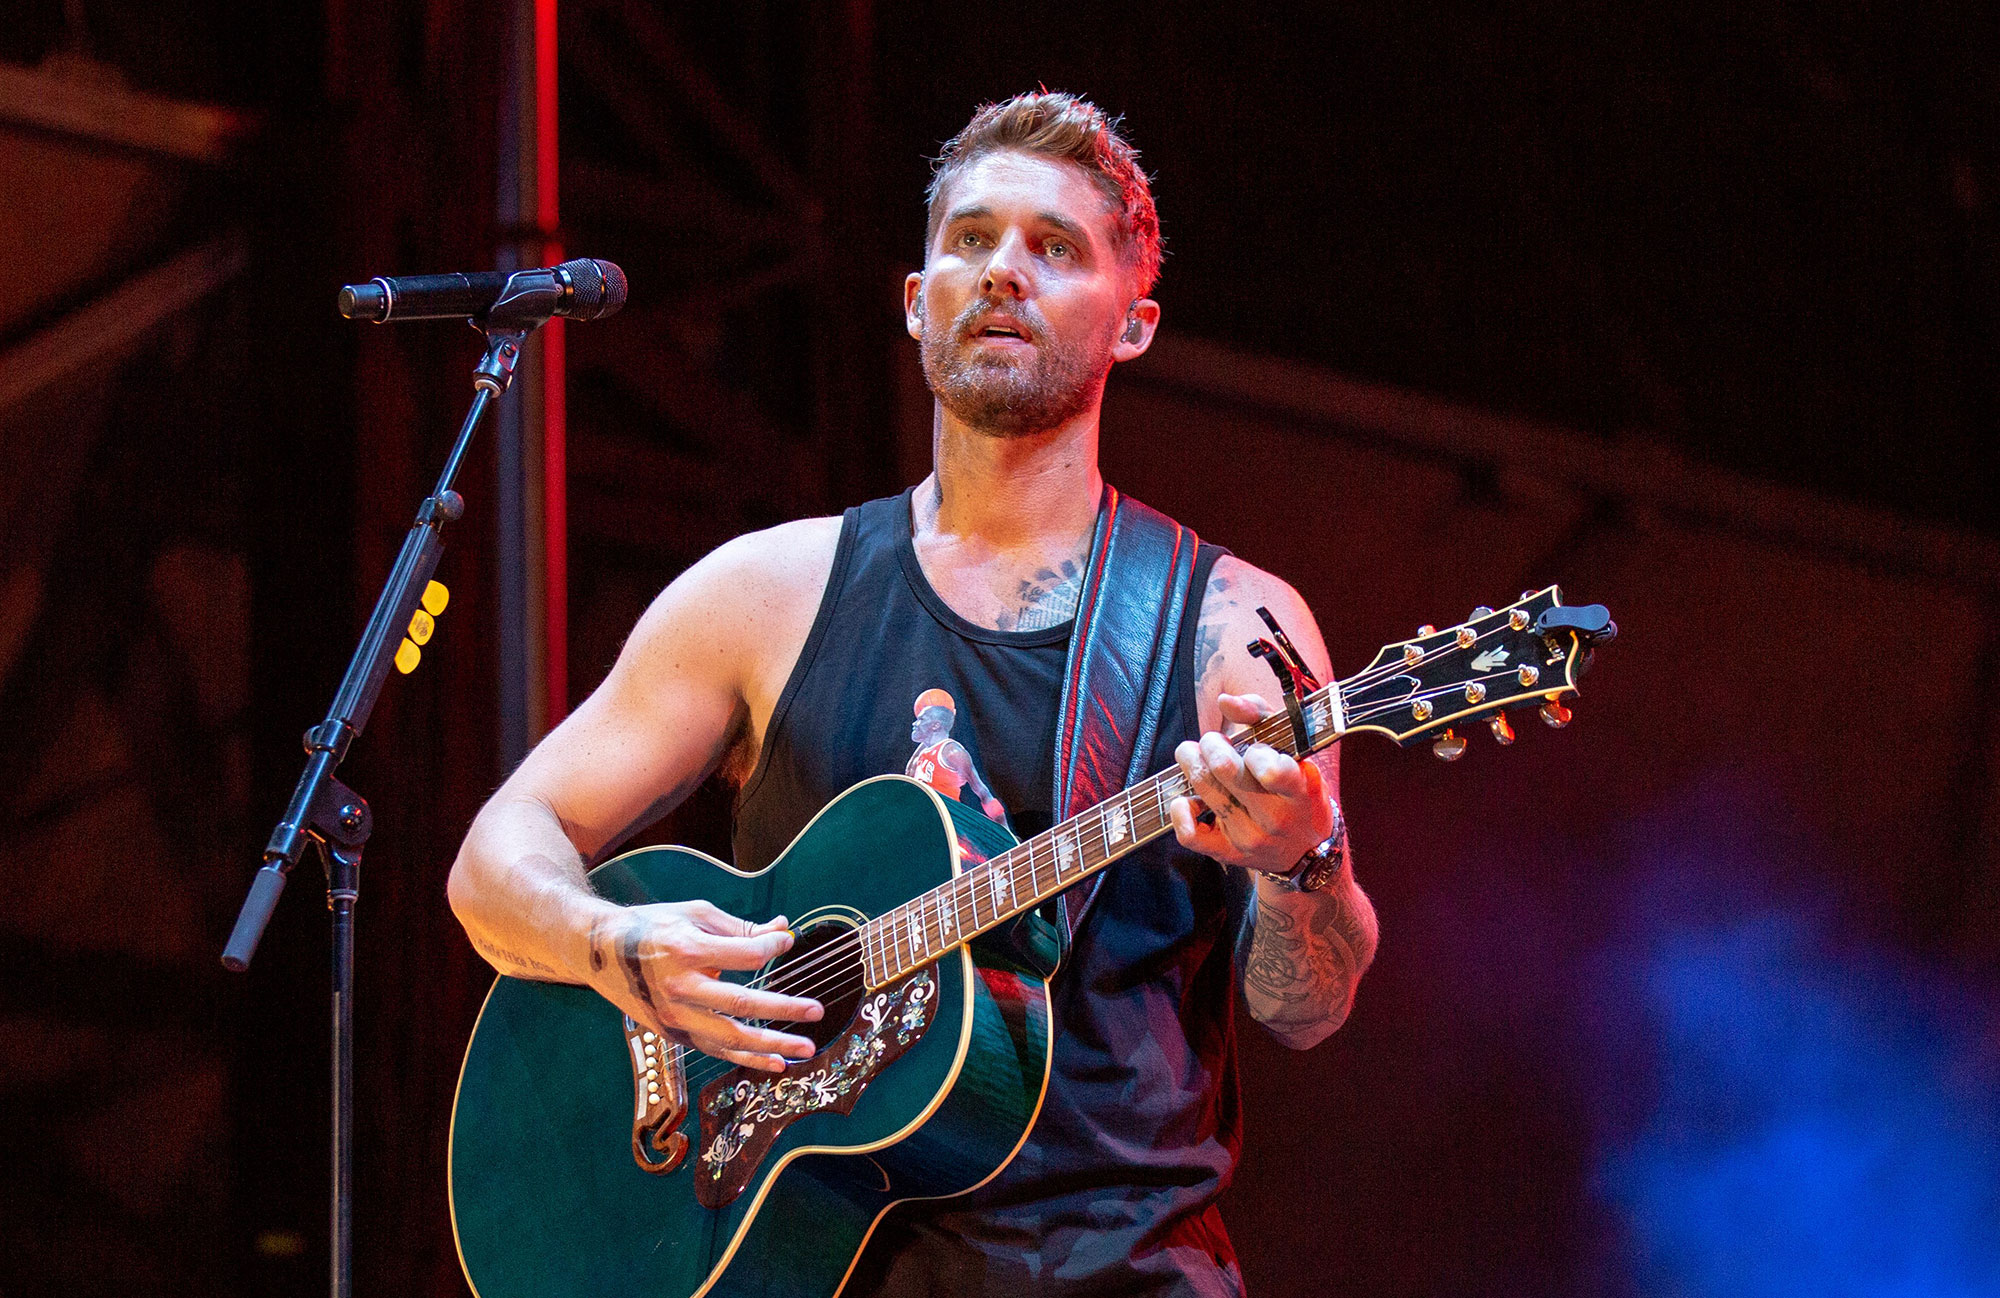 Brett Young Announces Headlining Cmt On Tour Dates Rolling Stone